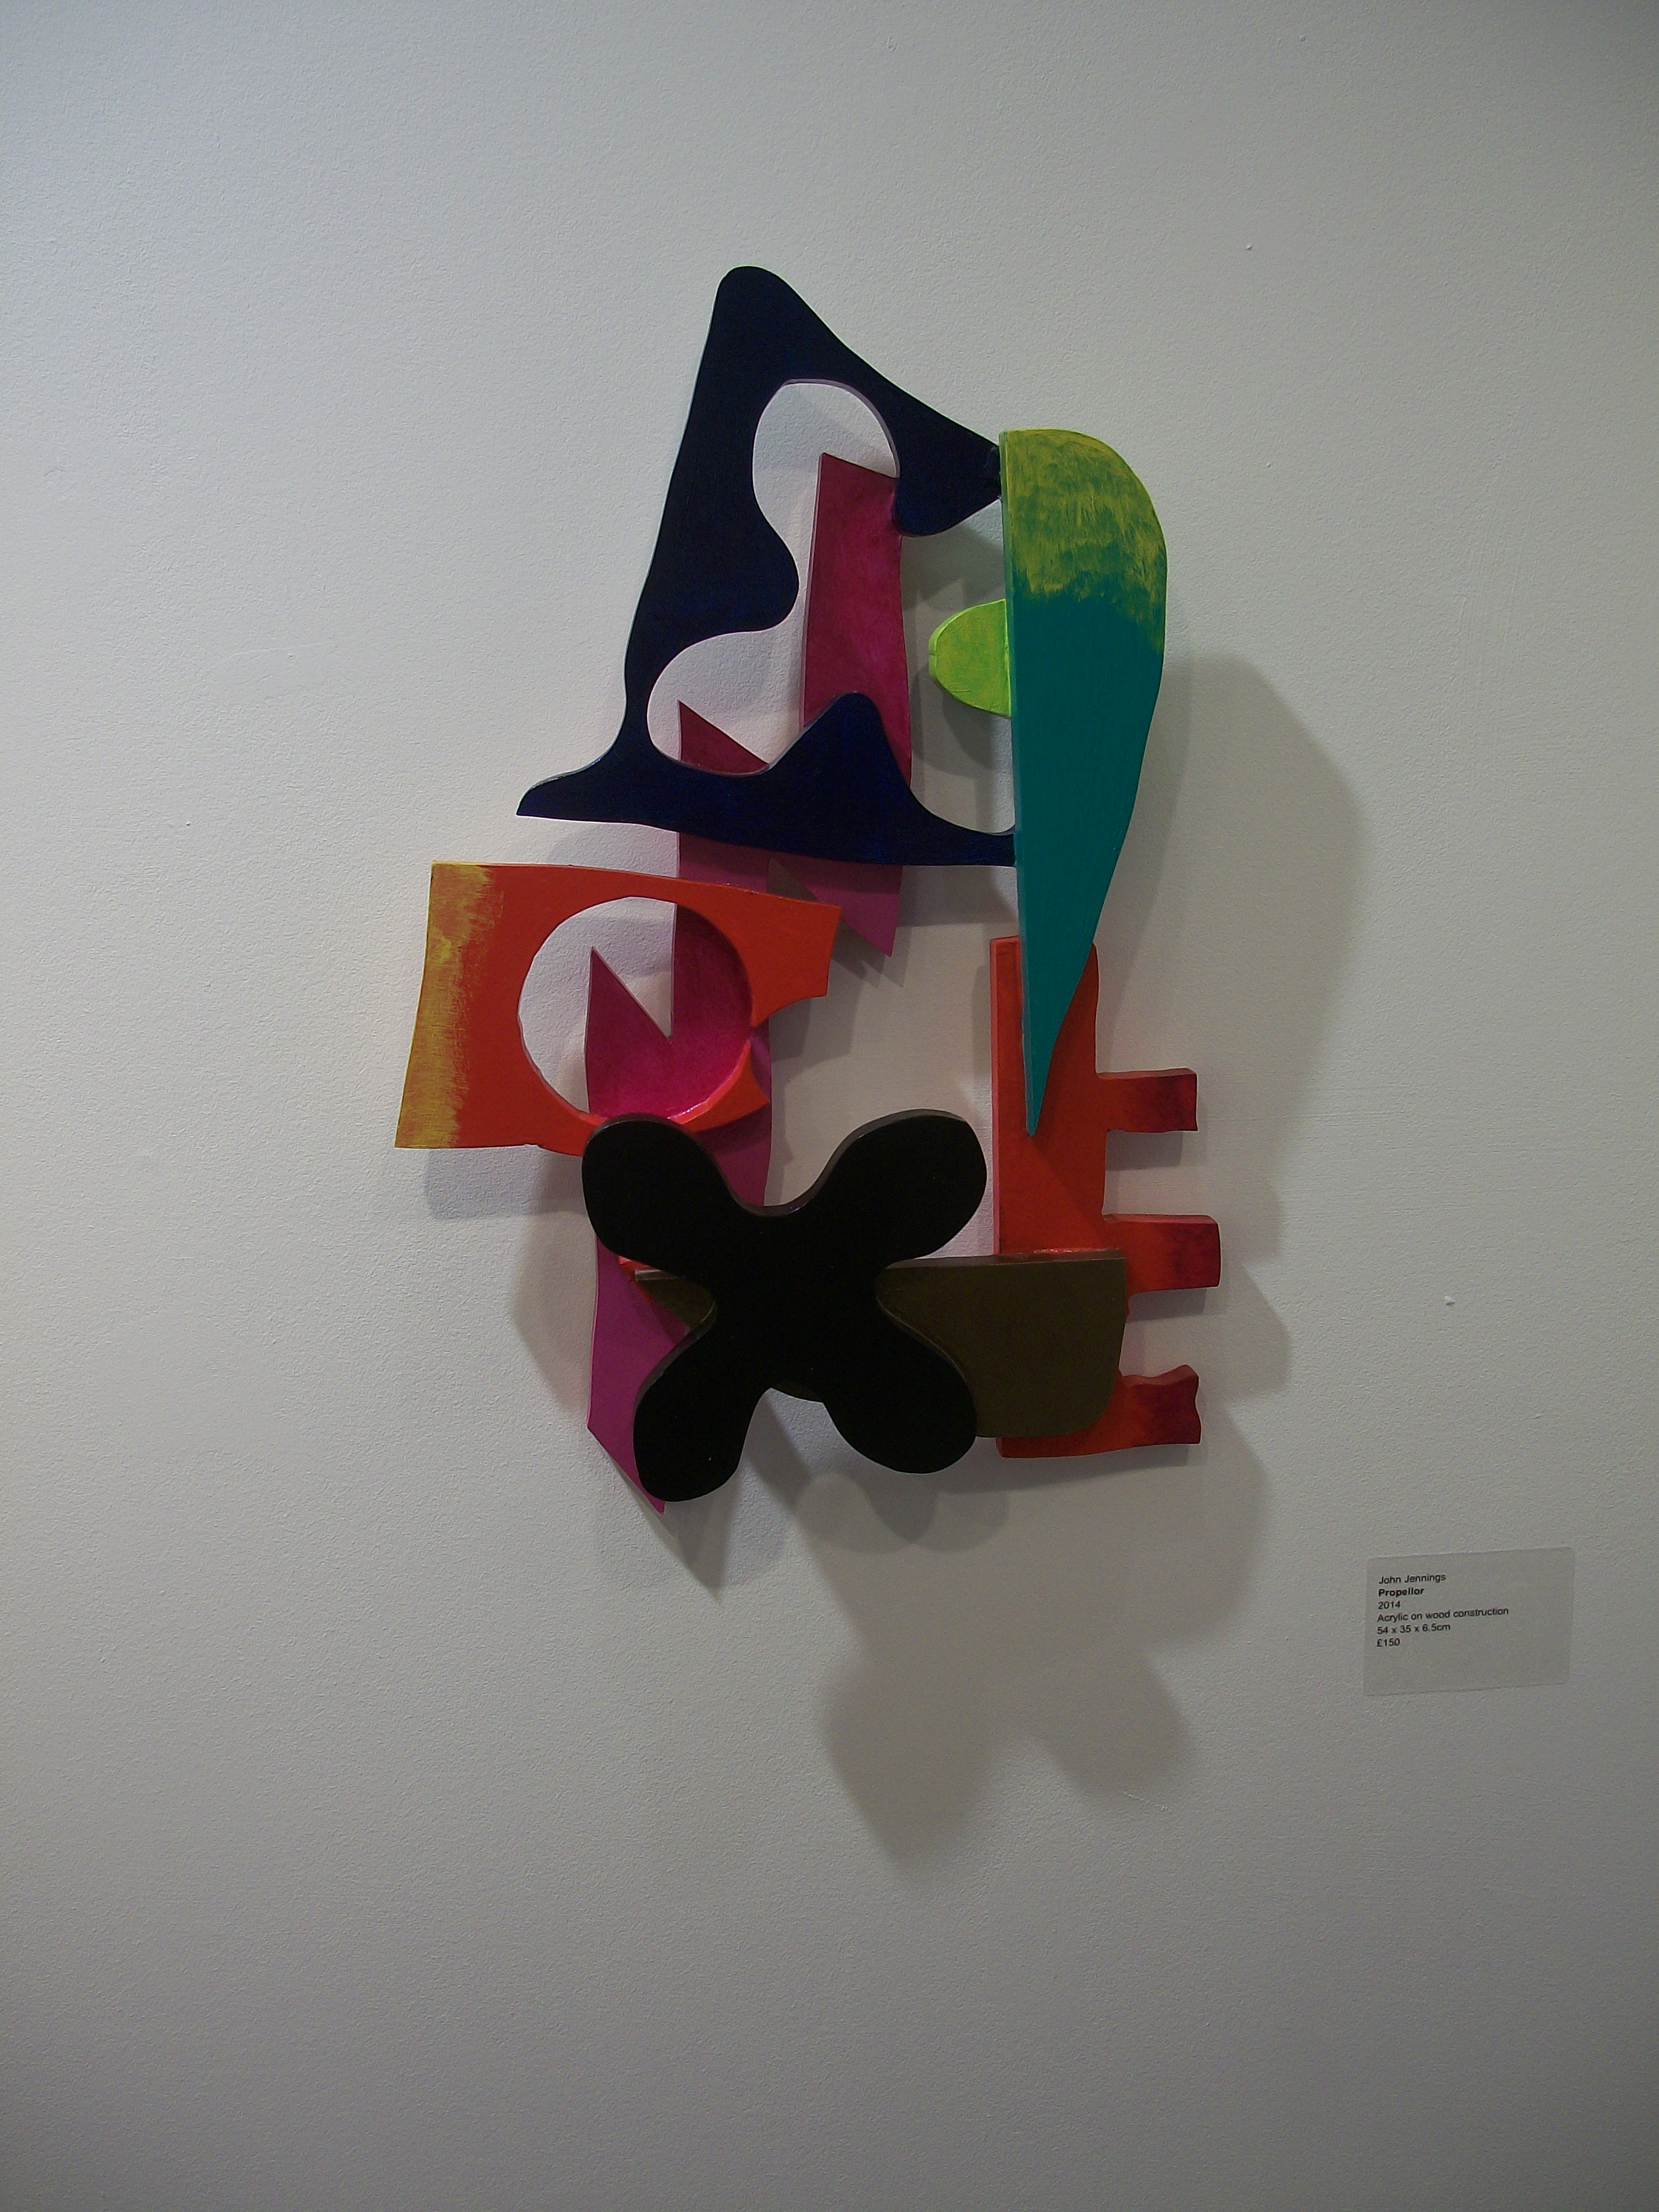 John Jennings 'Propellor'